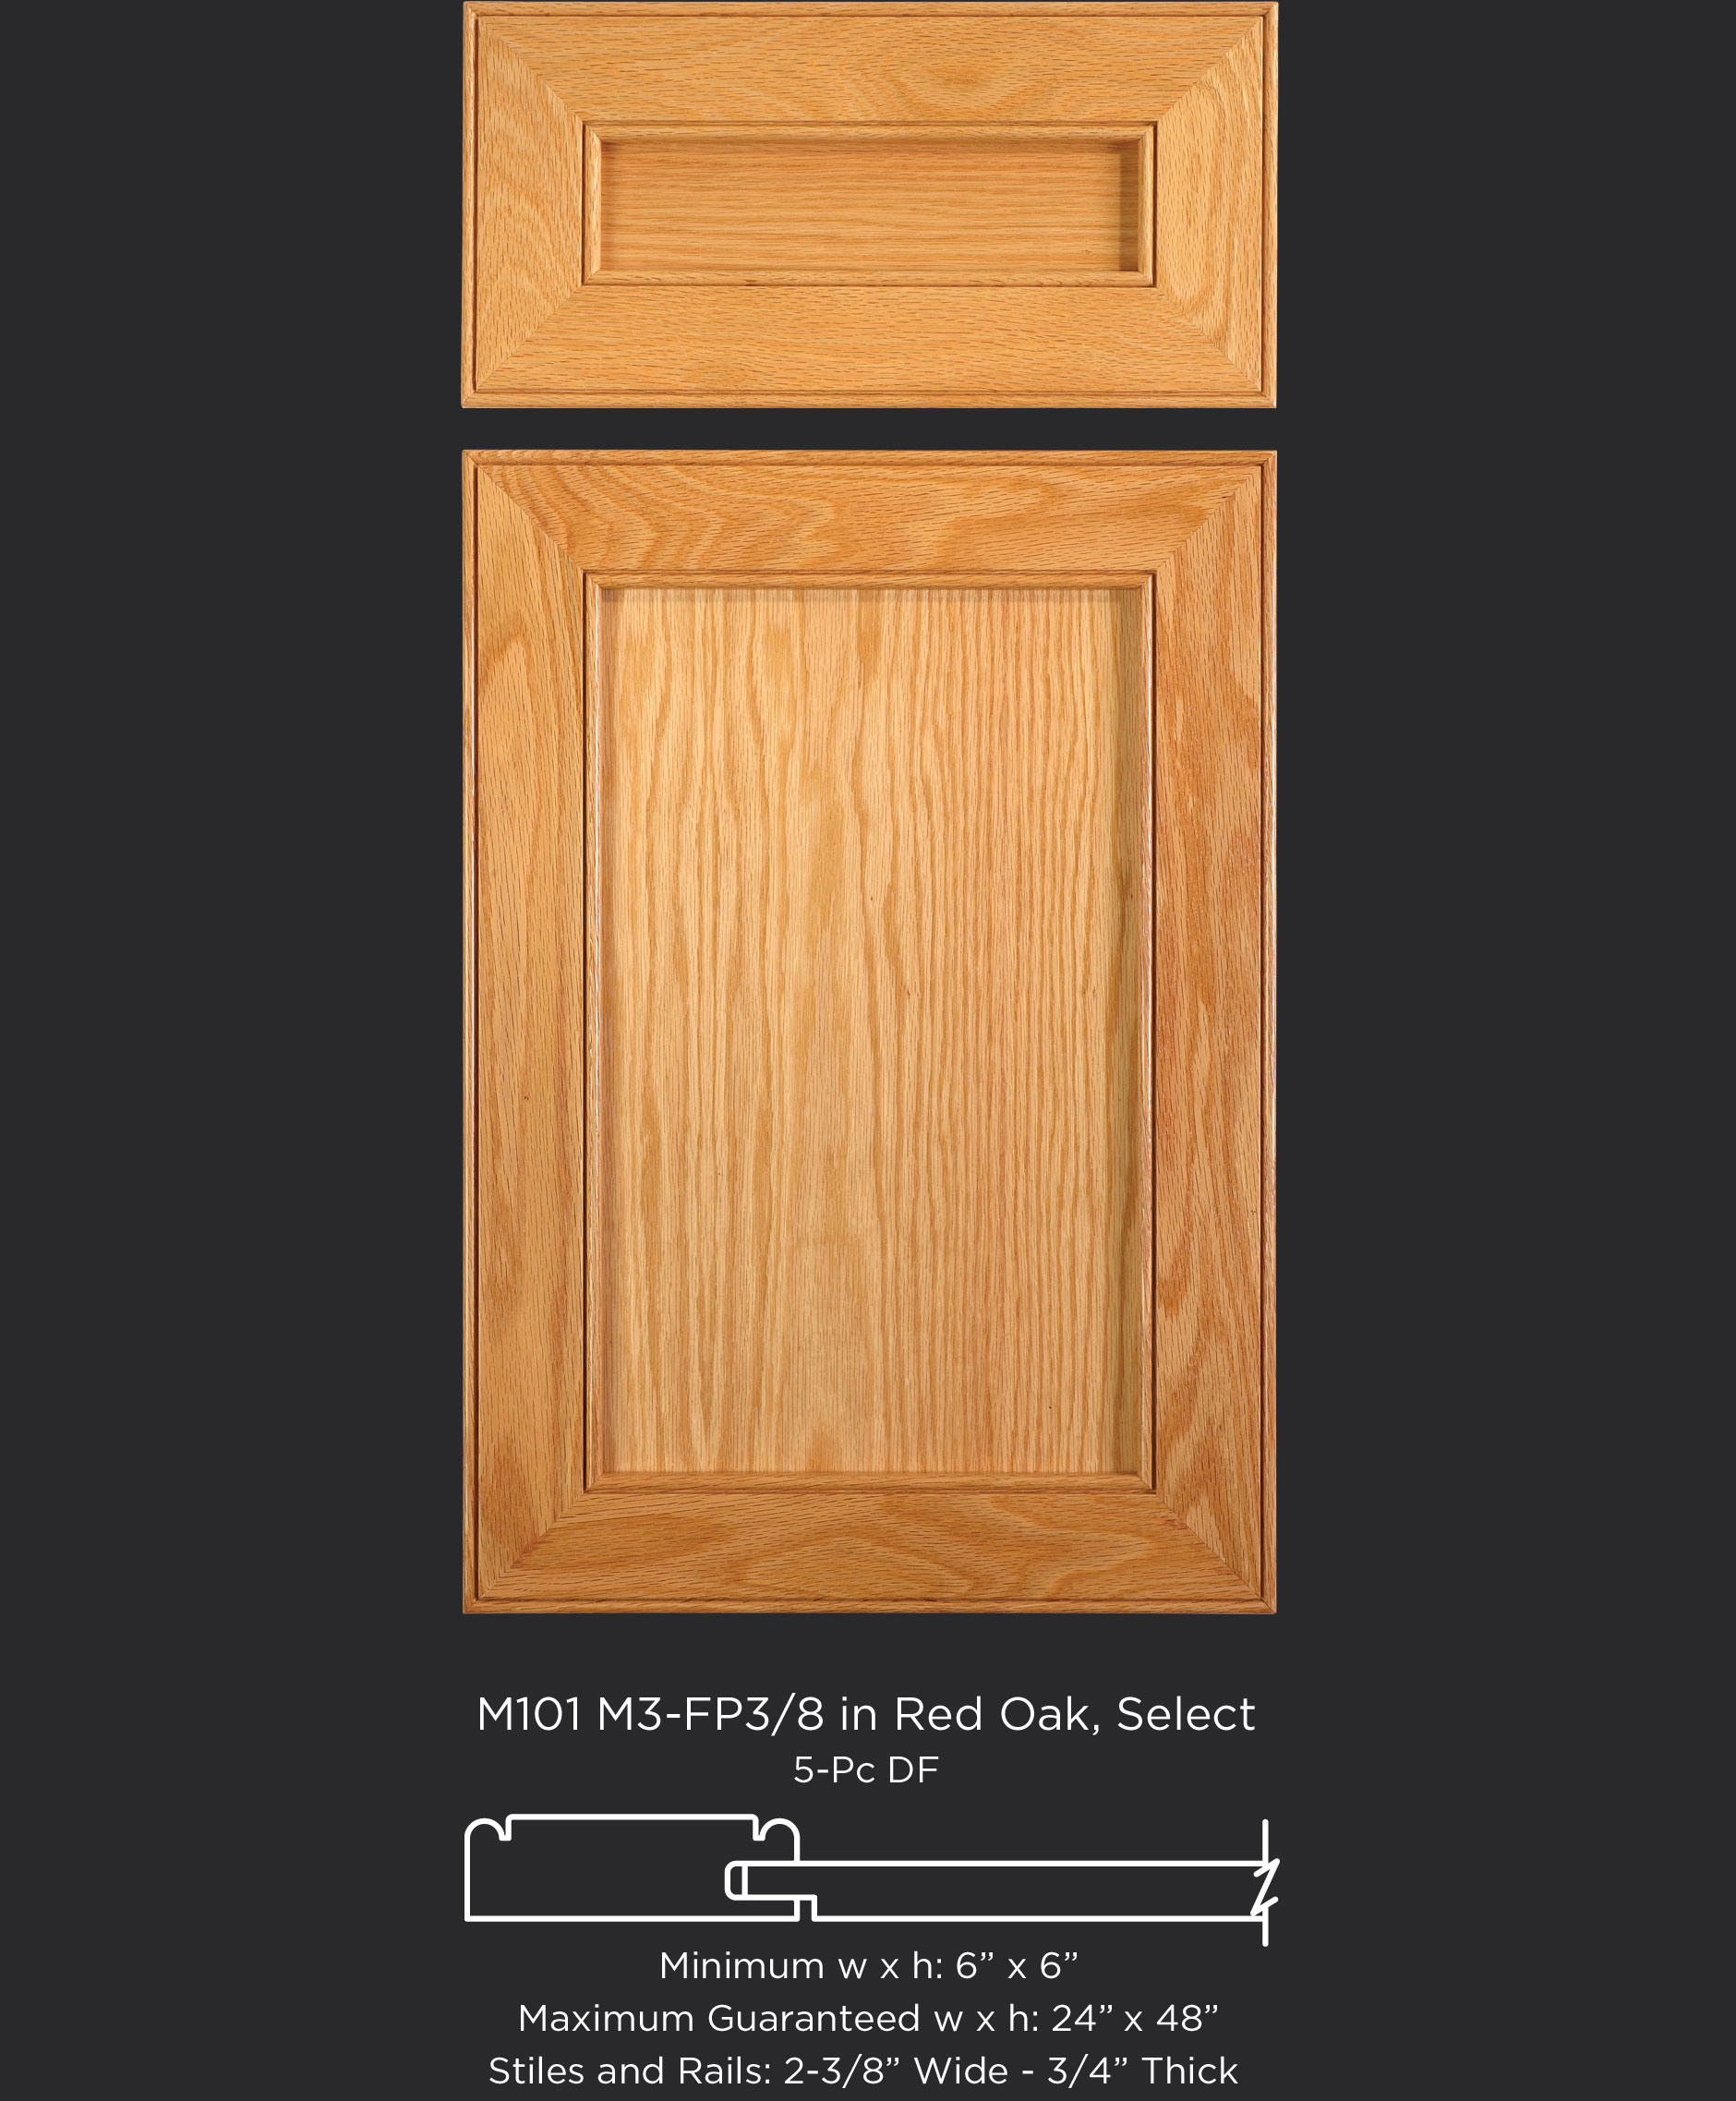 Mitered Cabinet Door M101 M3-FP3/8 in Red Oak, Select and standard 5-piece drawer front